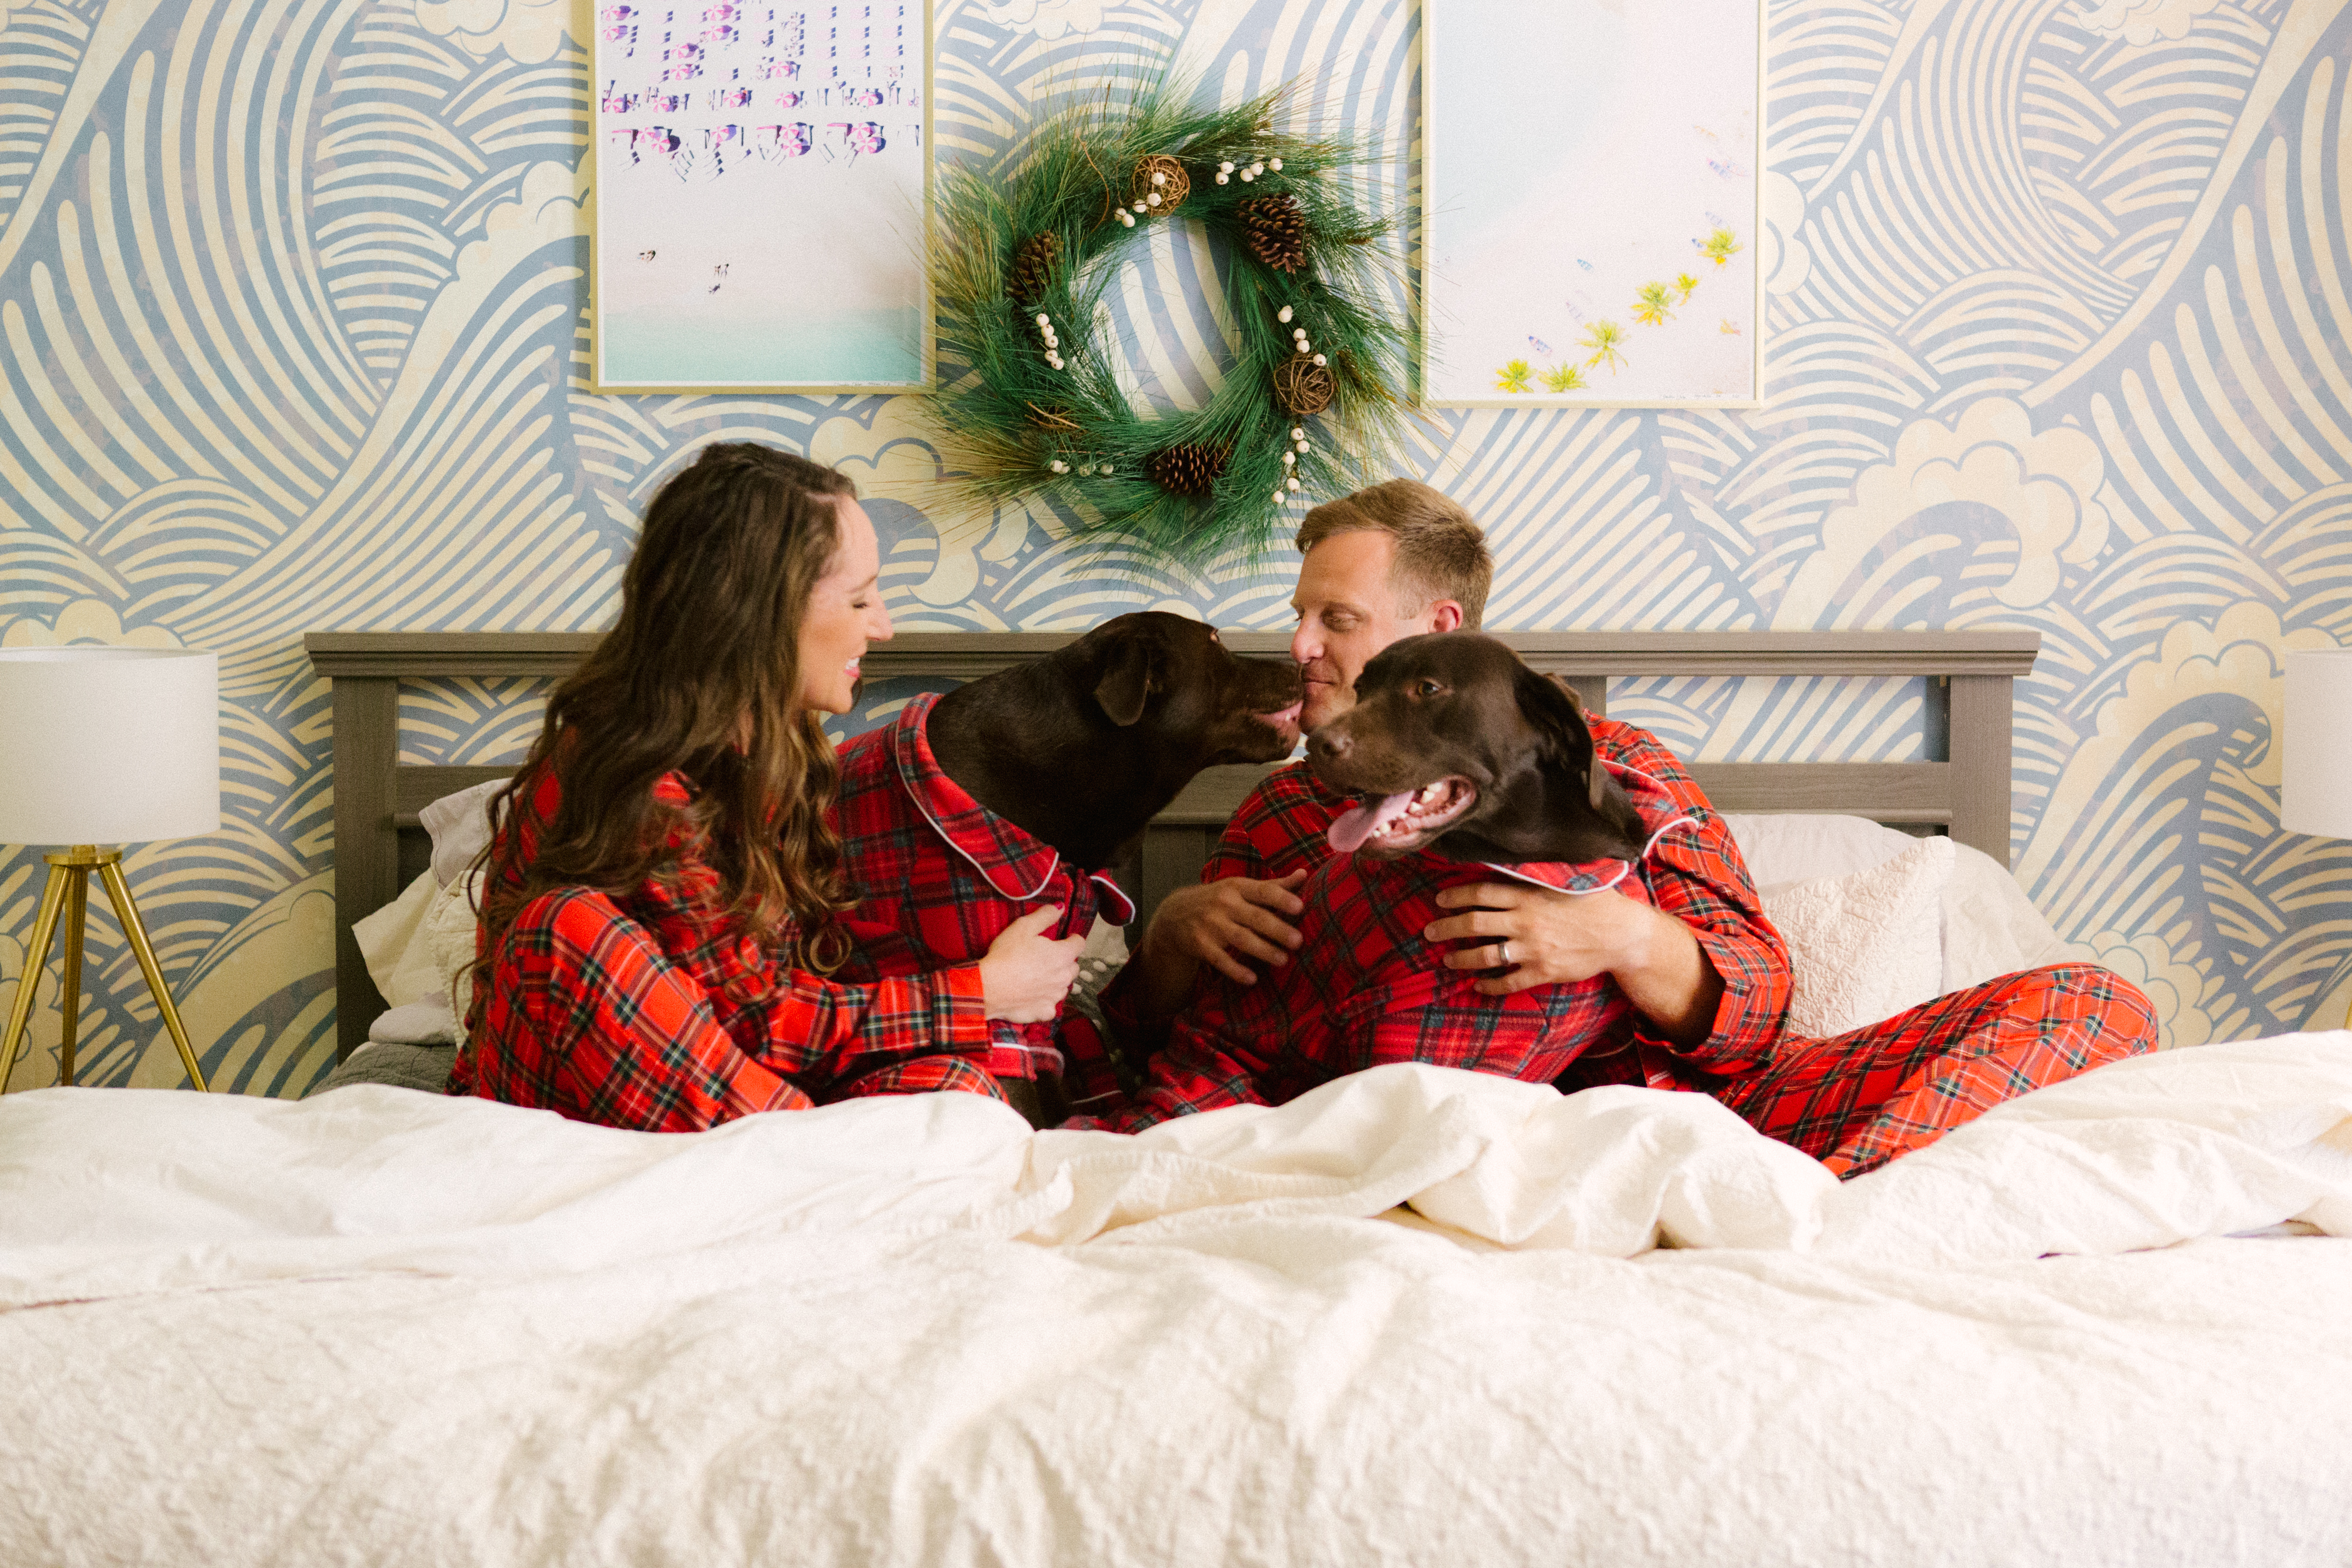 Family Christmas Pajamas With Dog.Our 2017 Christmas Card Reveal